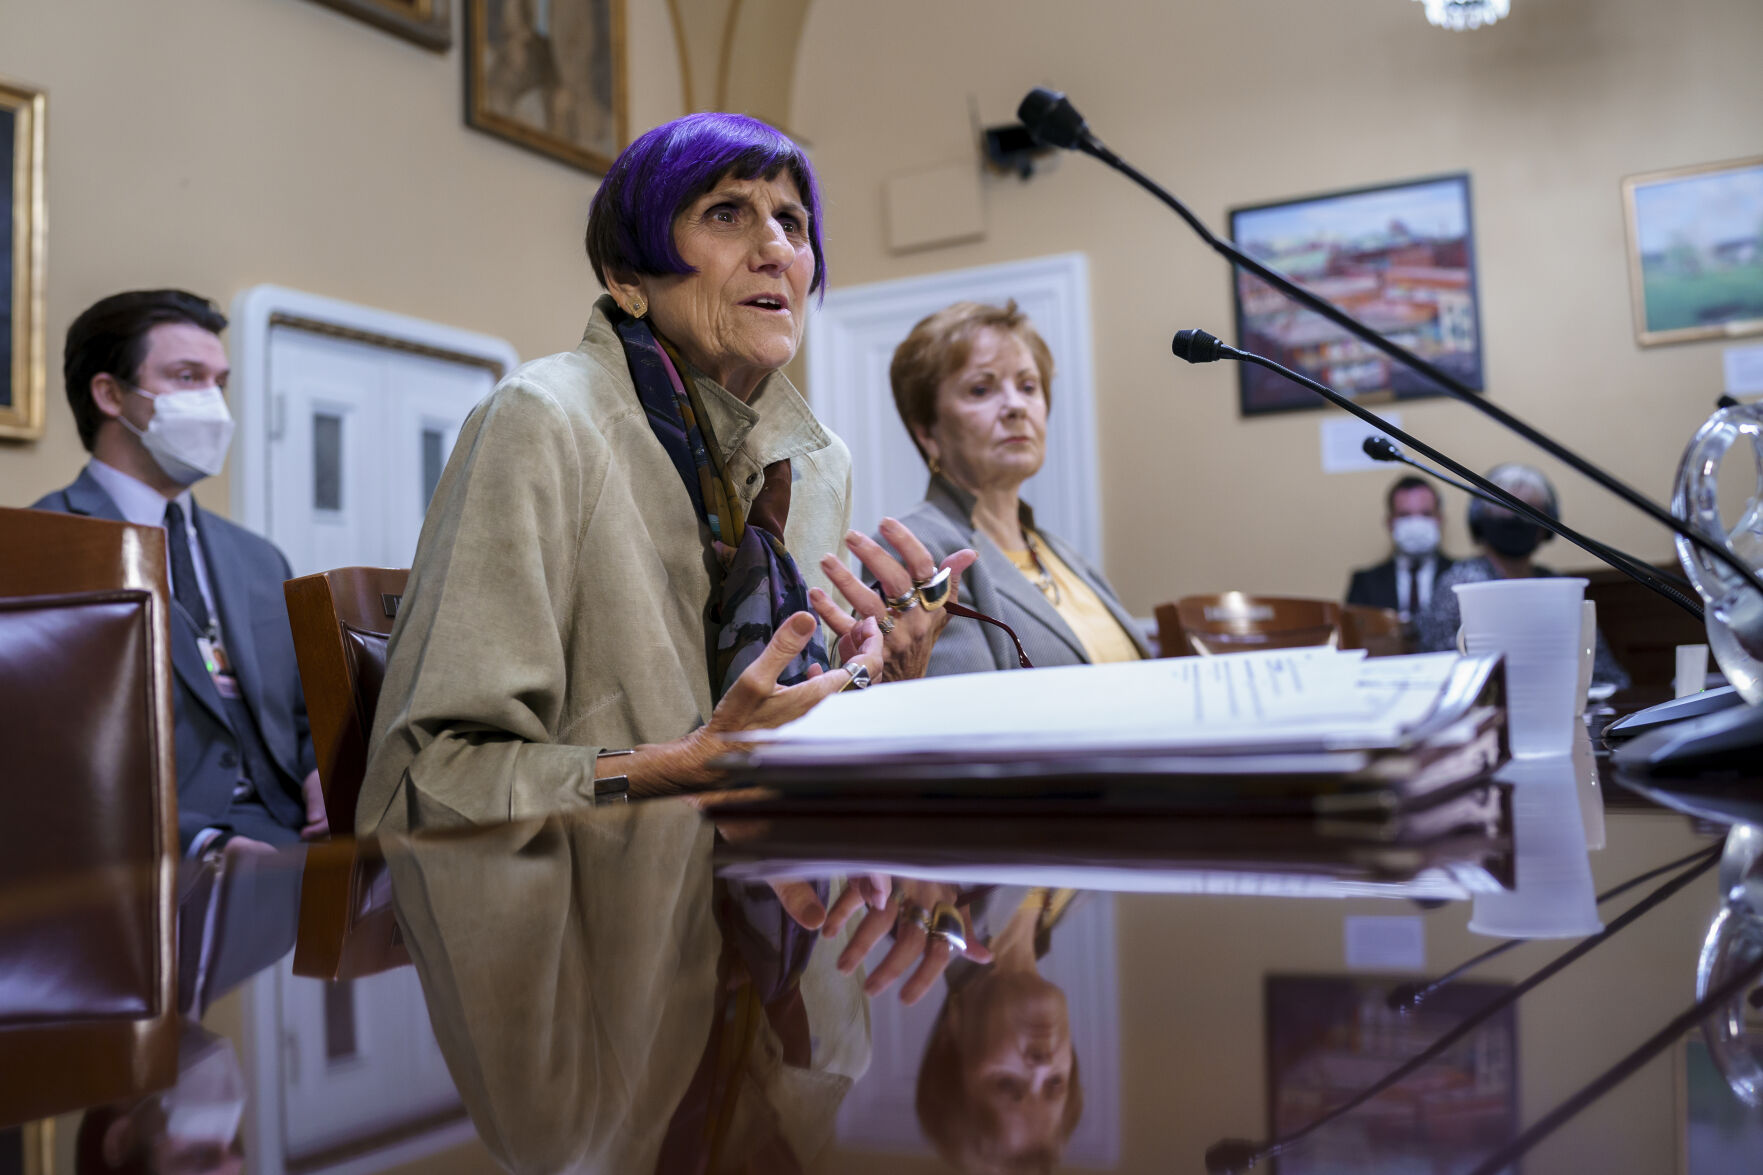 <p>House Appropriations Committee Chair Rosa DeLauro, D-Conn., left, joined by Rep. Kay Granger, R-Texas, the ranking member of Appropriations, appear before the House Rules Committee as they field questions about the politics of the federal debt, at the Capitol in Washington, Tuesday, Sept. 21, 2021. (AP Photo/J. Scott Applewhite)</p>